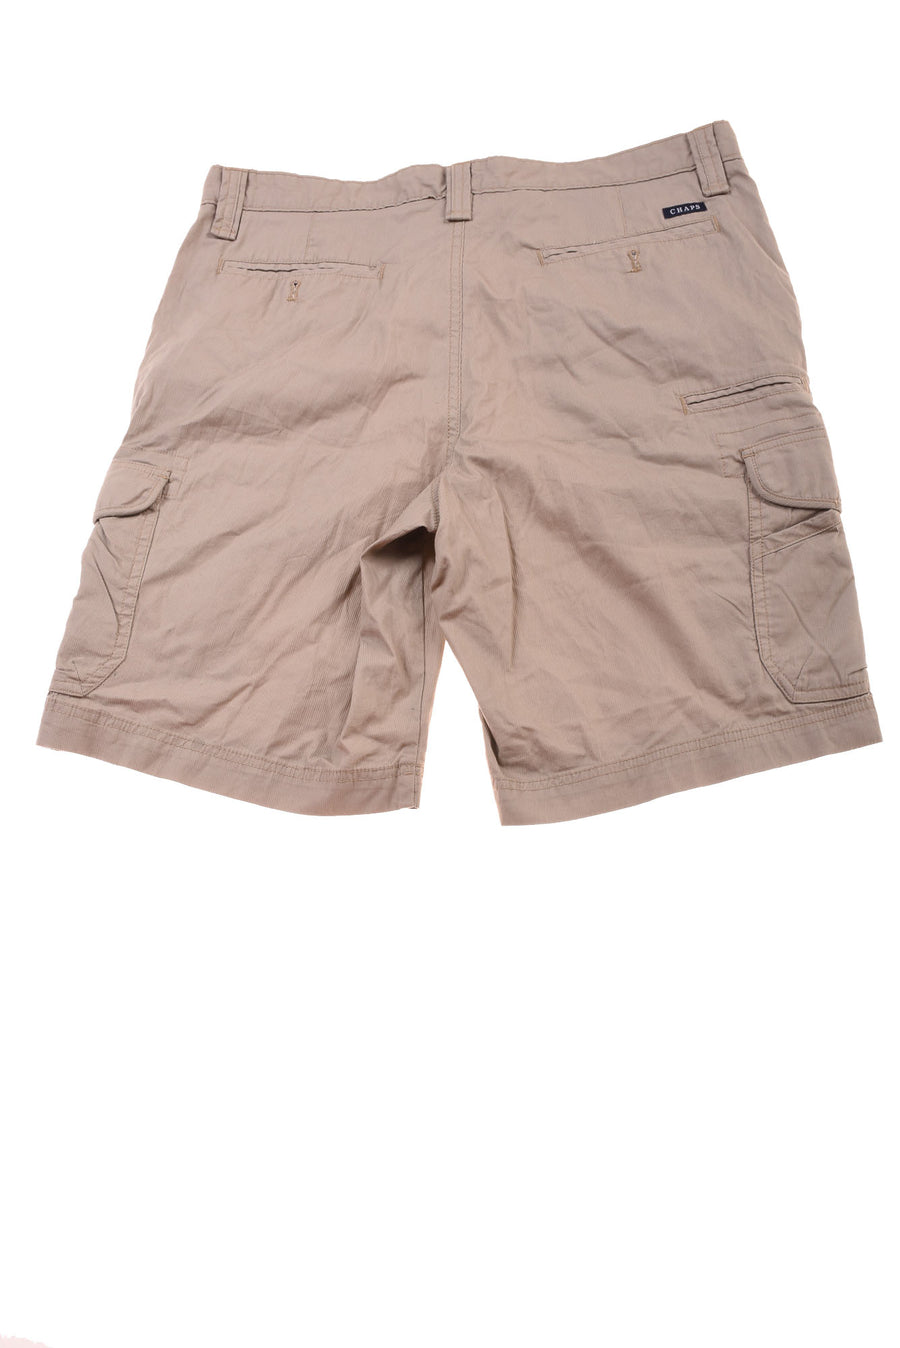 Men's Shorts By Chaps